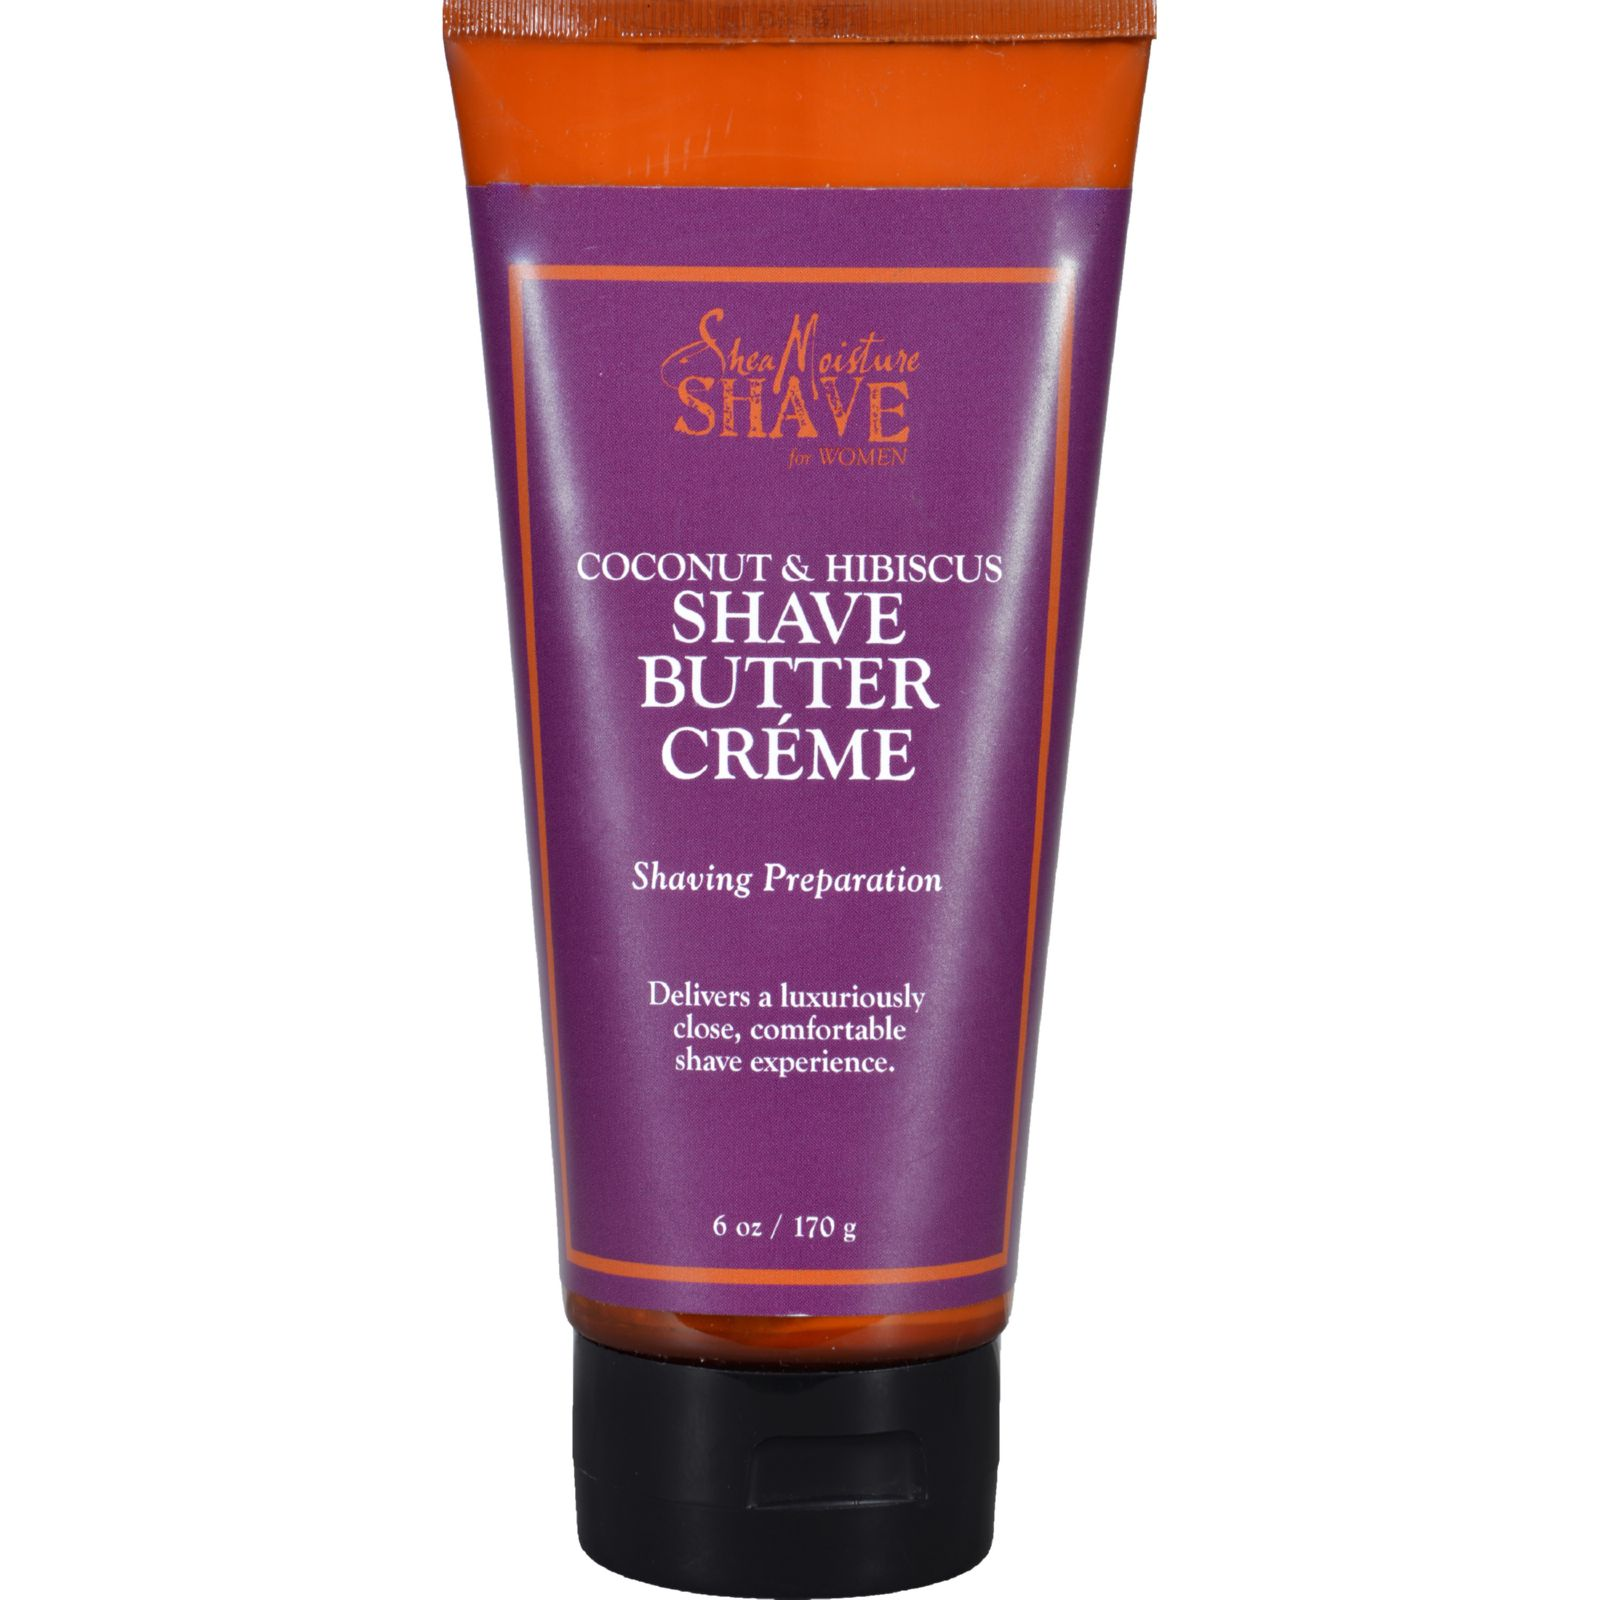 SheaMoisture Shave Butter Creme  Coconut and Hibiscus  Women  6 oz